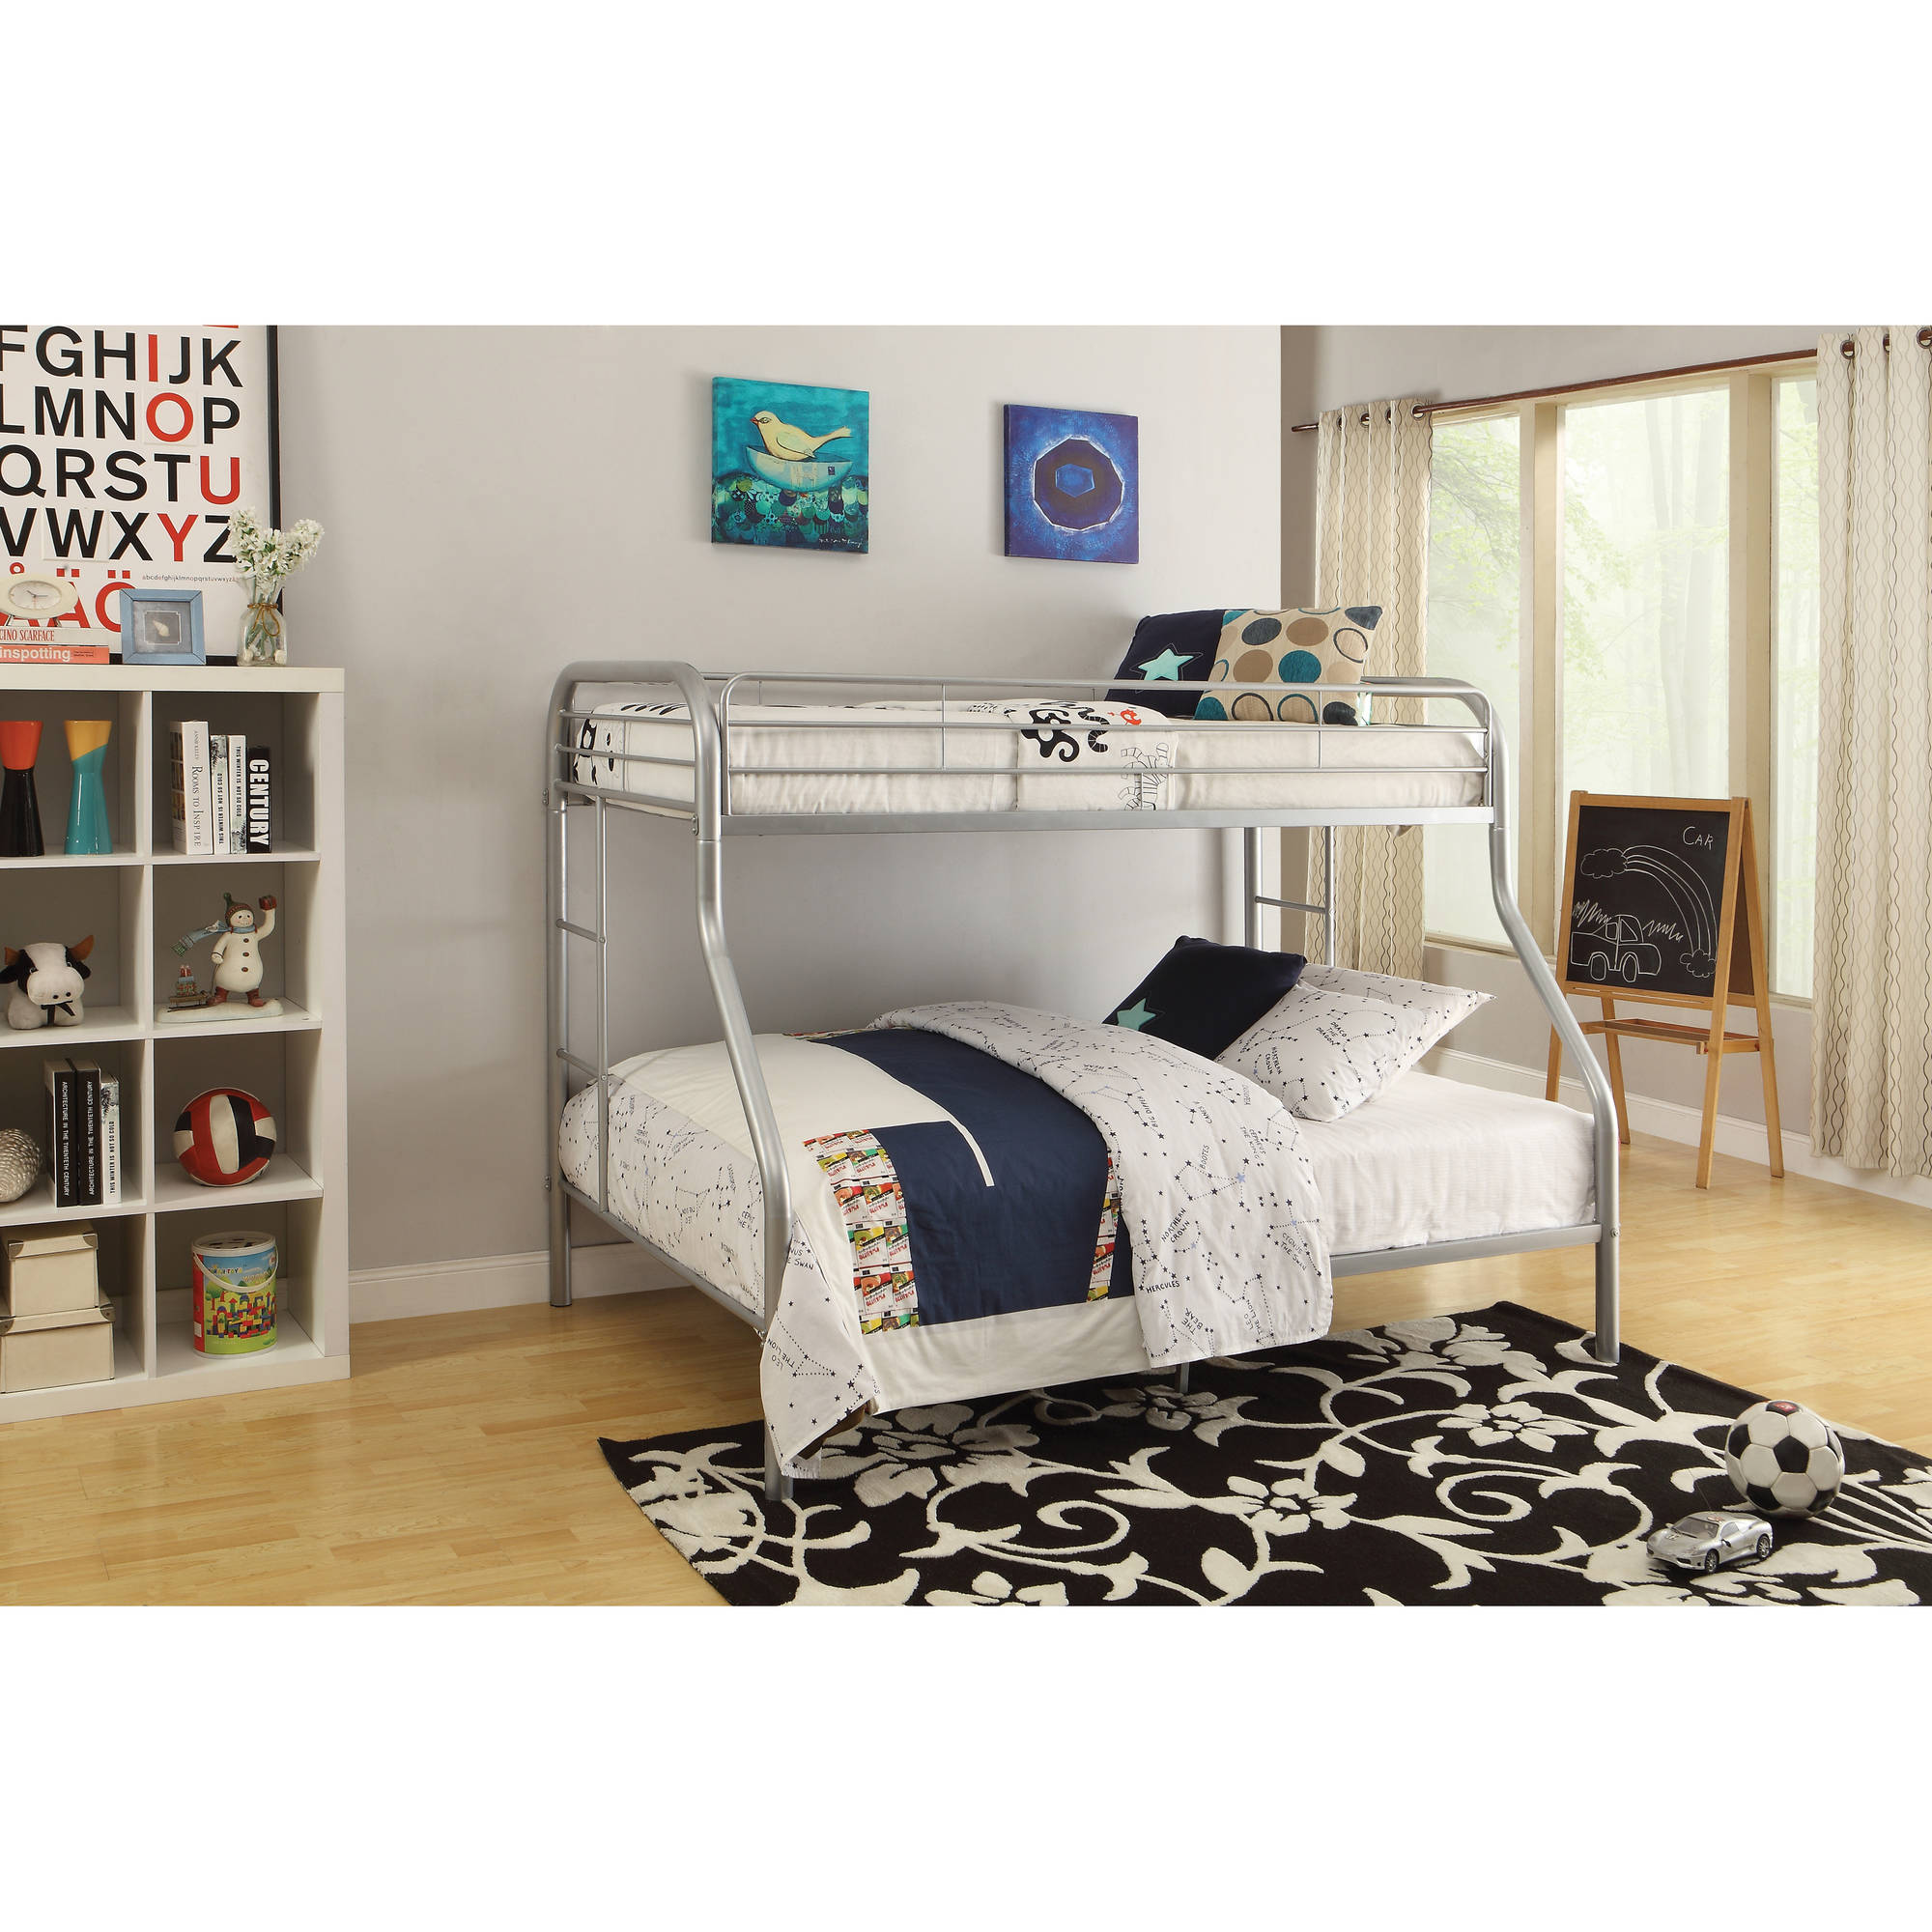 tritan twin xl over queen metal bunk bed, silver - walmart